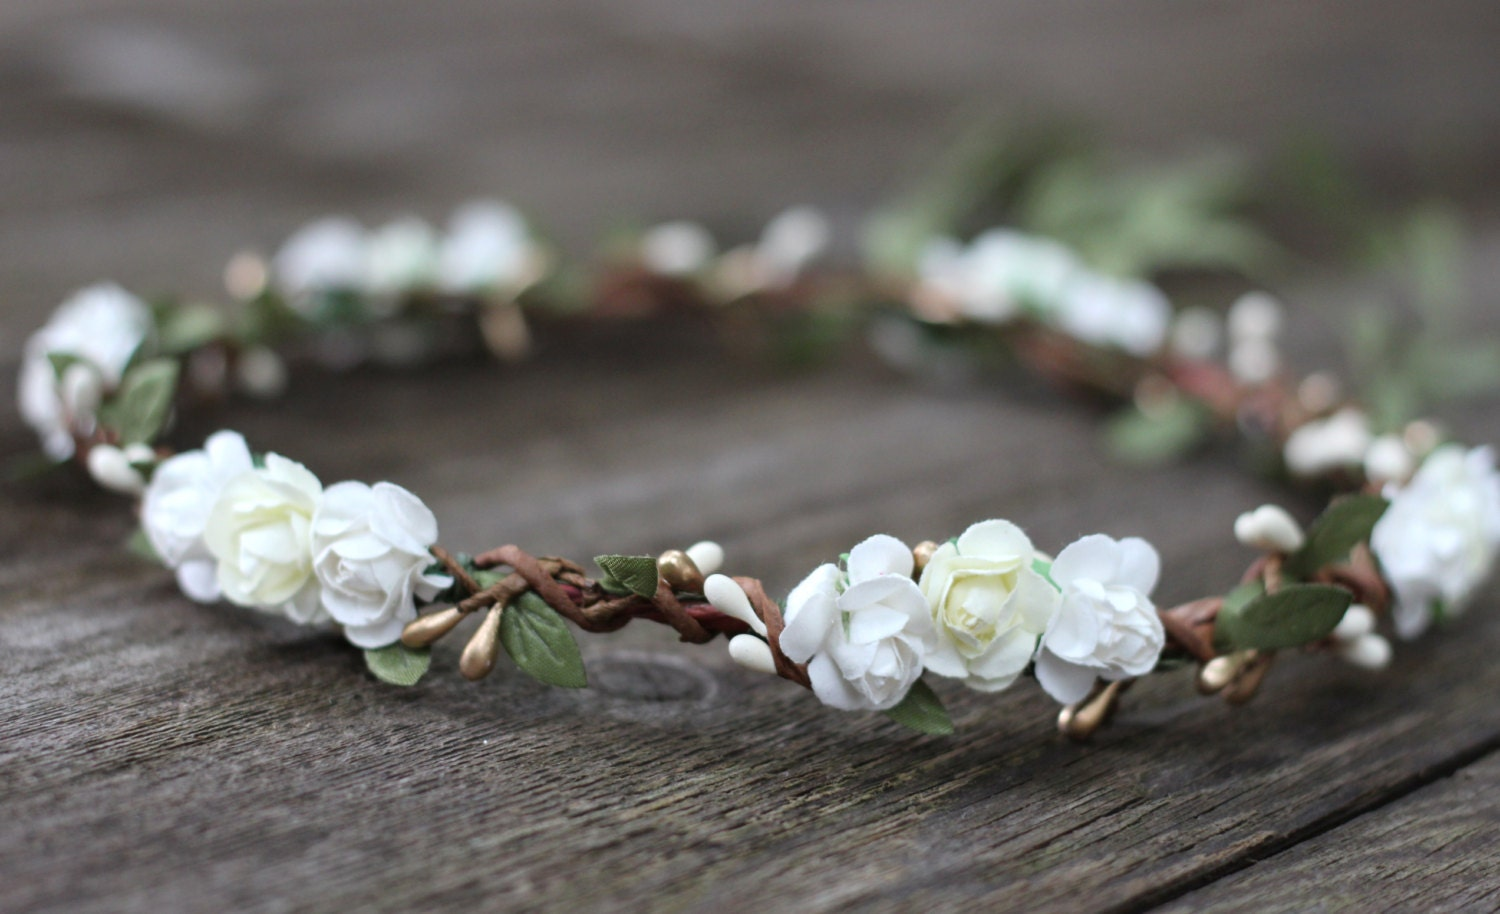 Ivory and white flower crown gold bridal flower crown headpiece ivory and white flower crown gold bridal flower crown headpiece white rose crown floral headband hair mightylinksfo